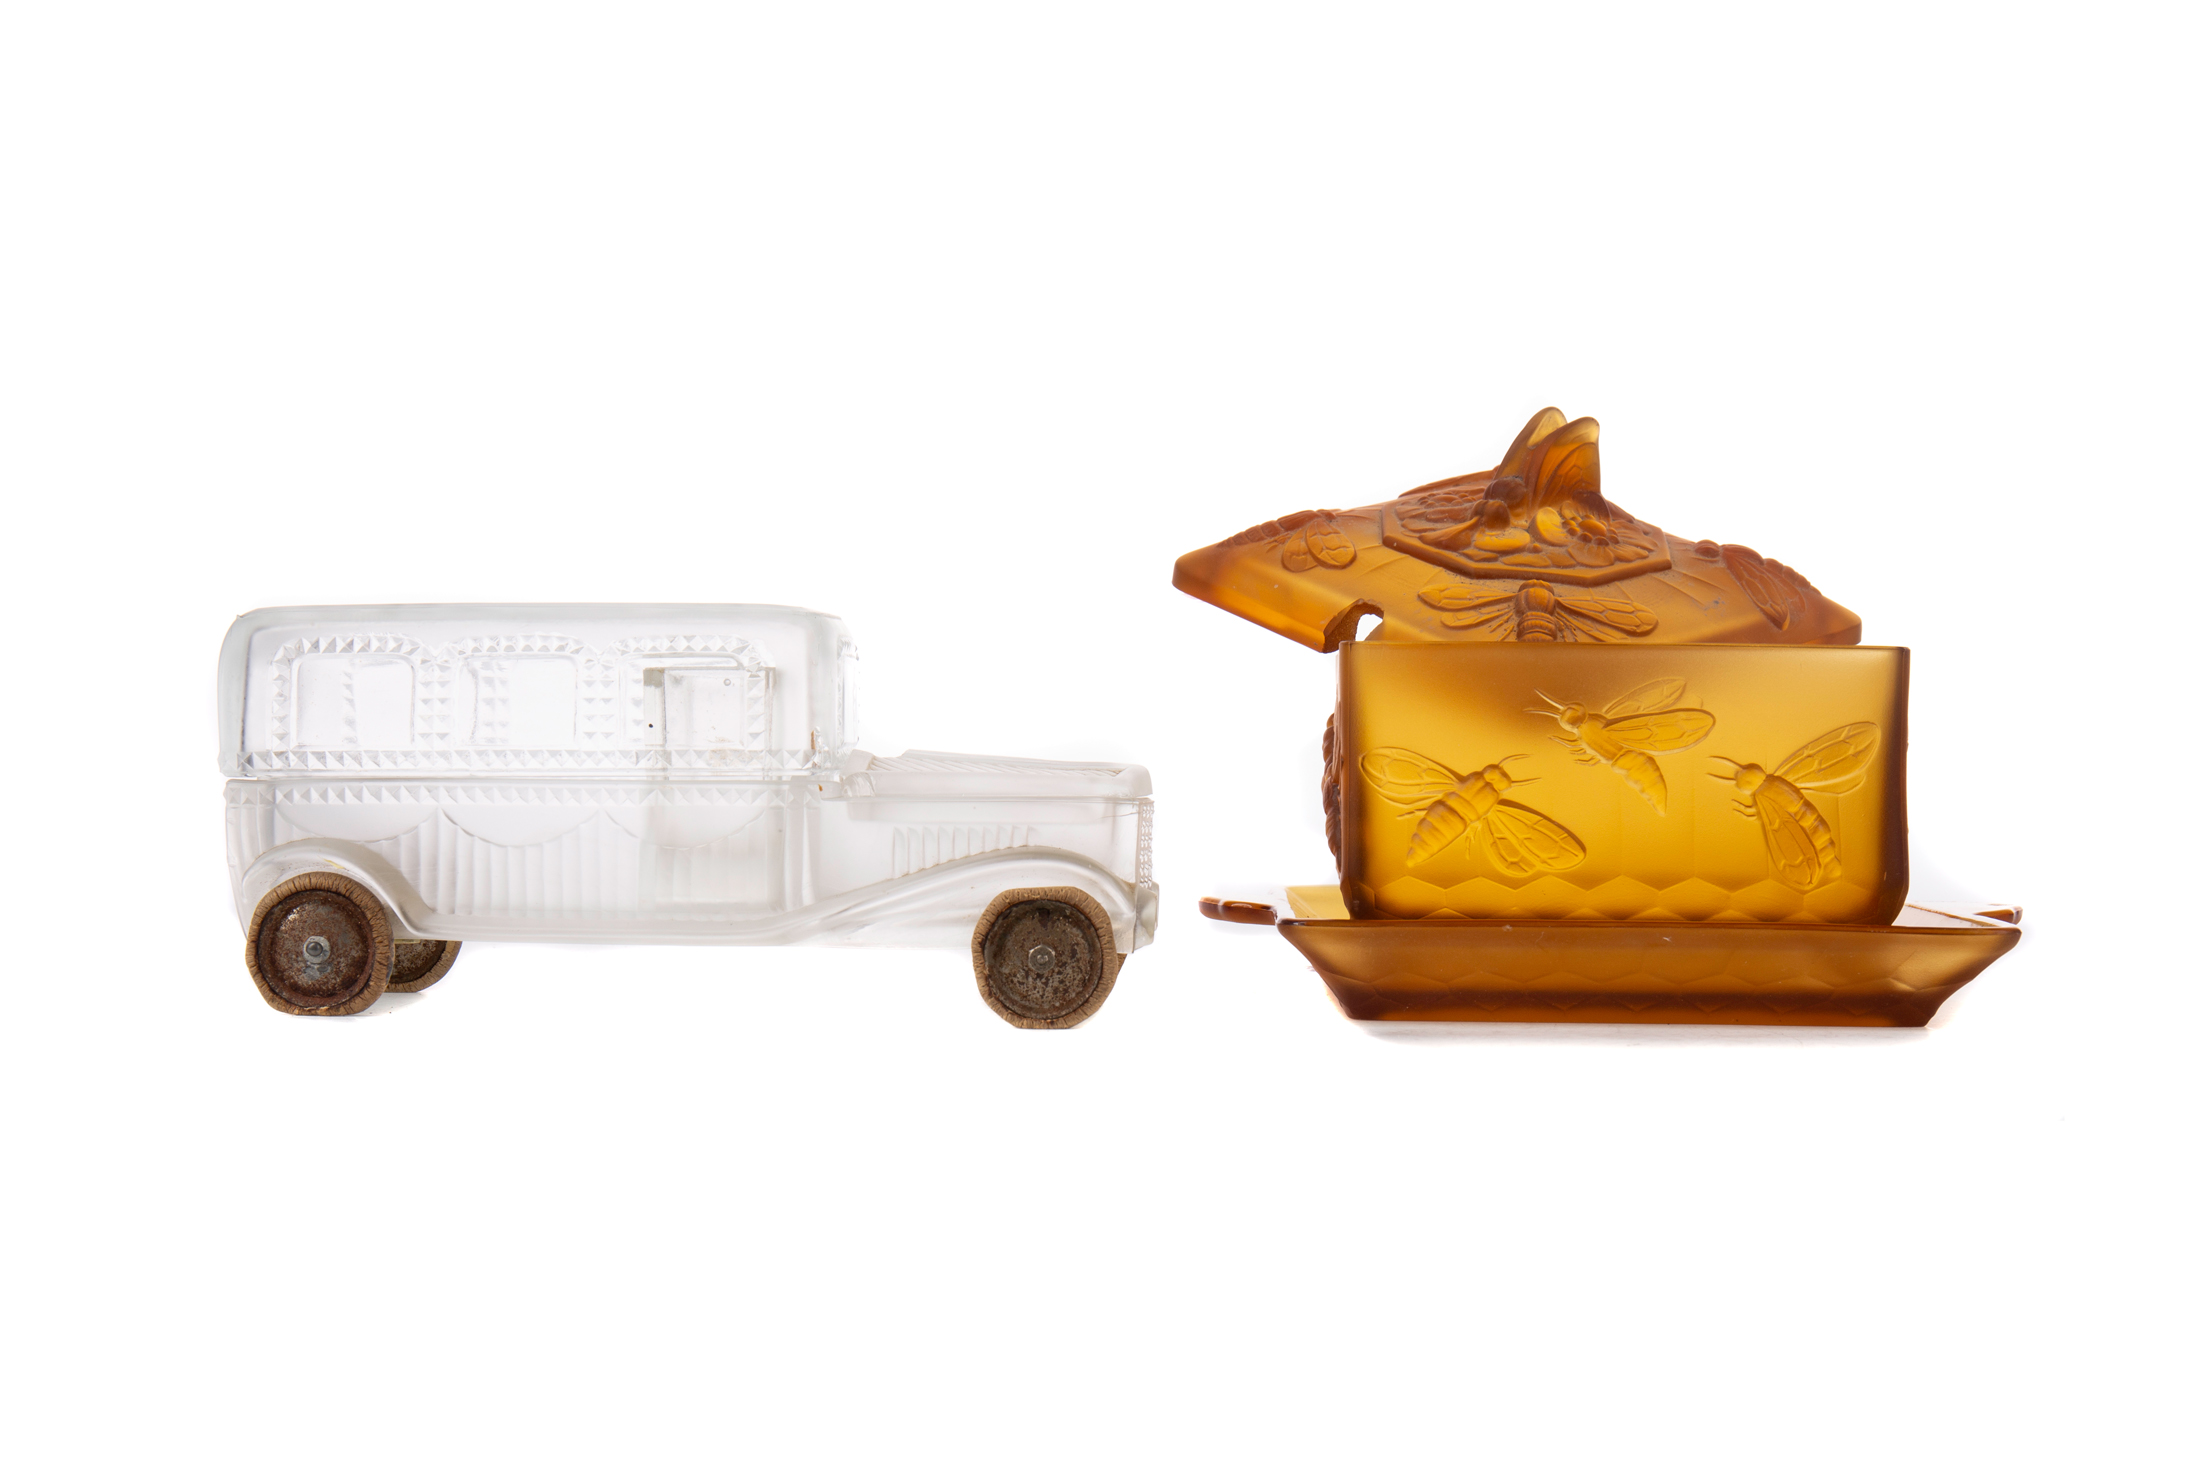 AN EARLY 20TH CENTURY AMBER GLASS PRESERVE JAR, COVER AND STAND, ALONG WITH A FROSTED GLASS JAR